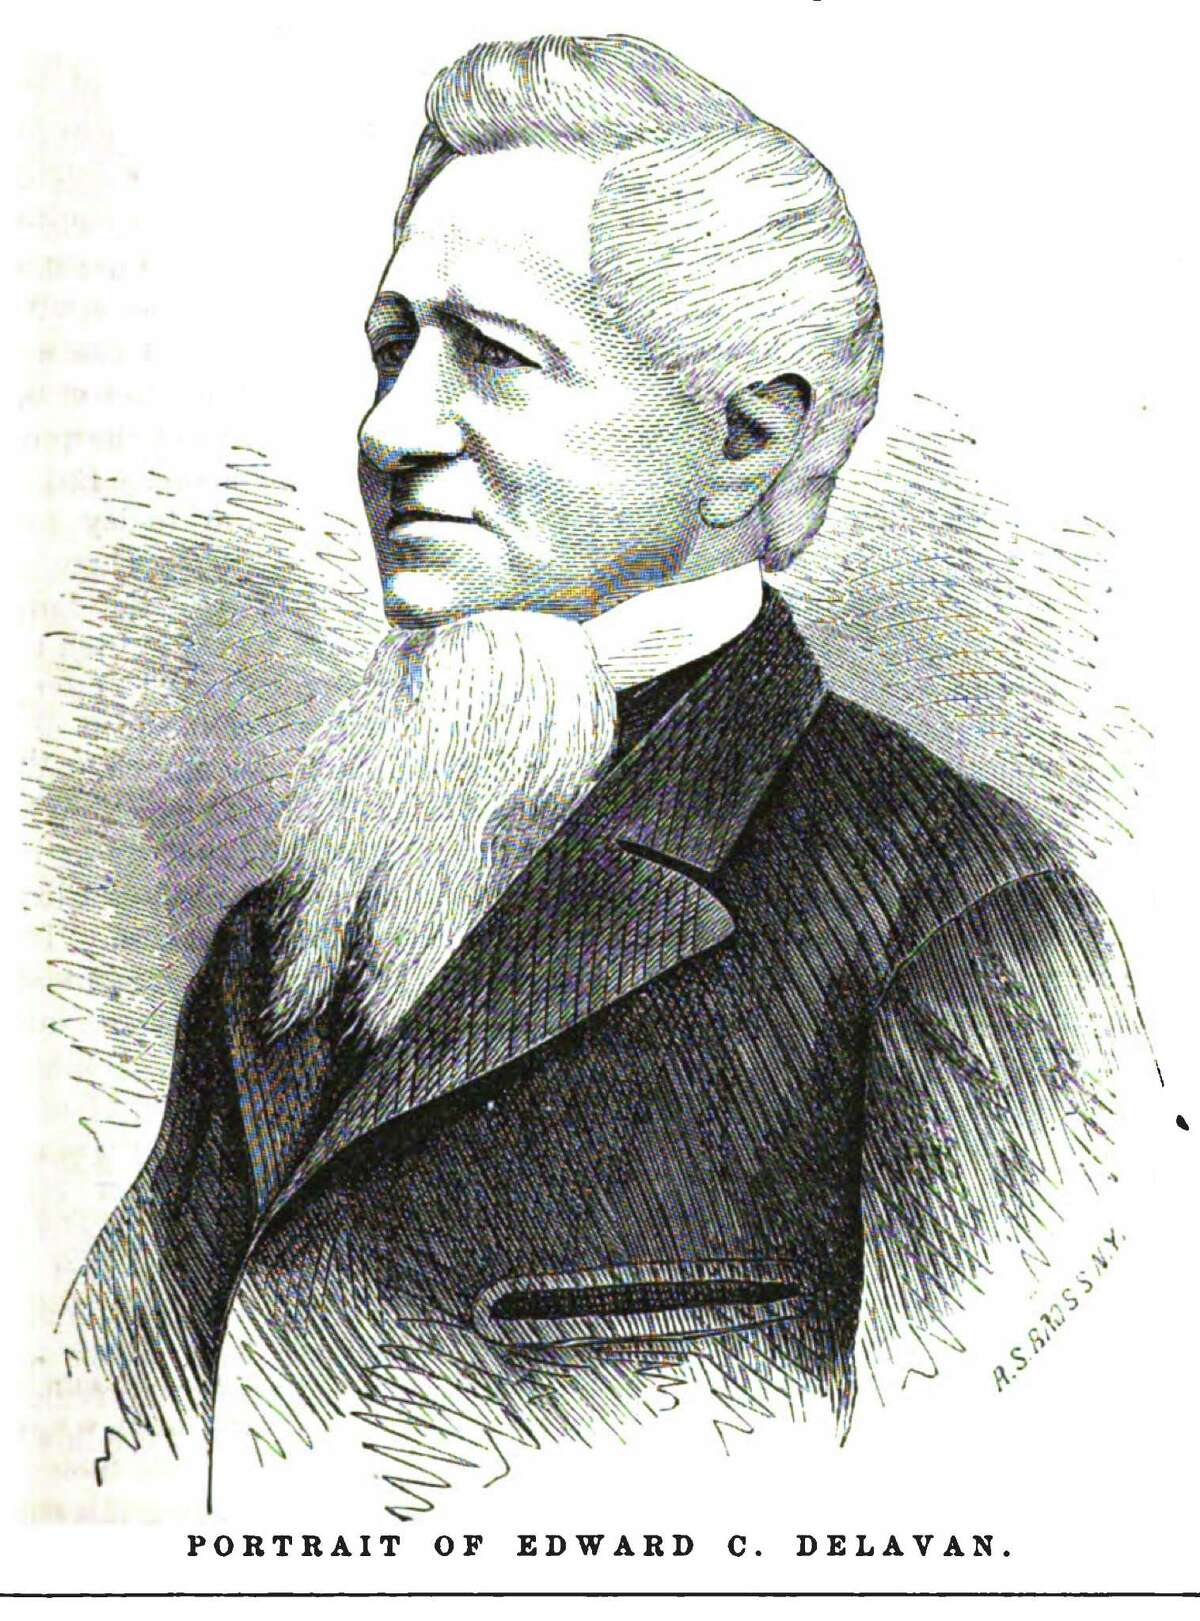 """An illustration of Edward C. Delavan that accompanied the article """"Edward C. Delavan, The Eminent Temperance Advocate"""" in the April 1871 issue of the Phrenological Journal."""